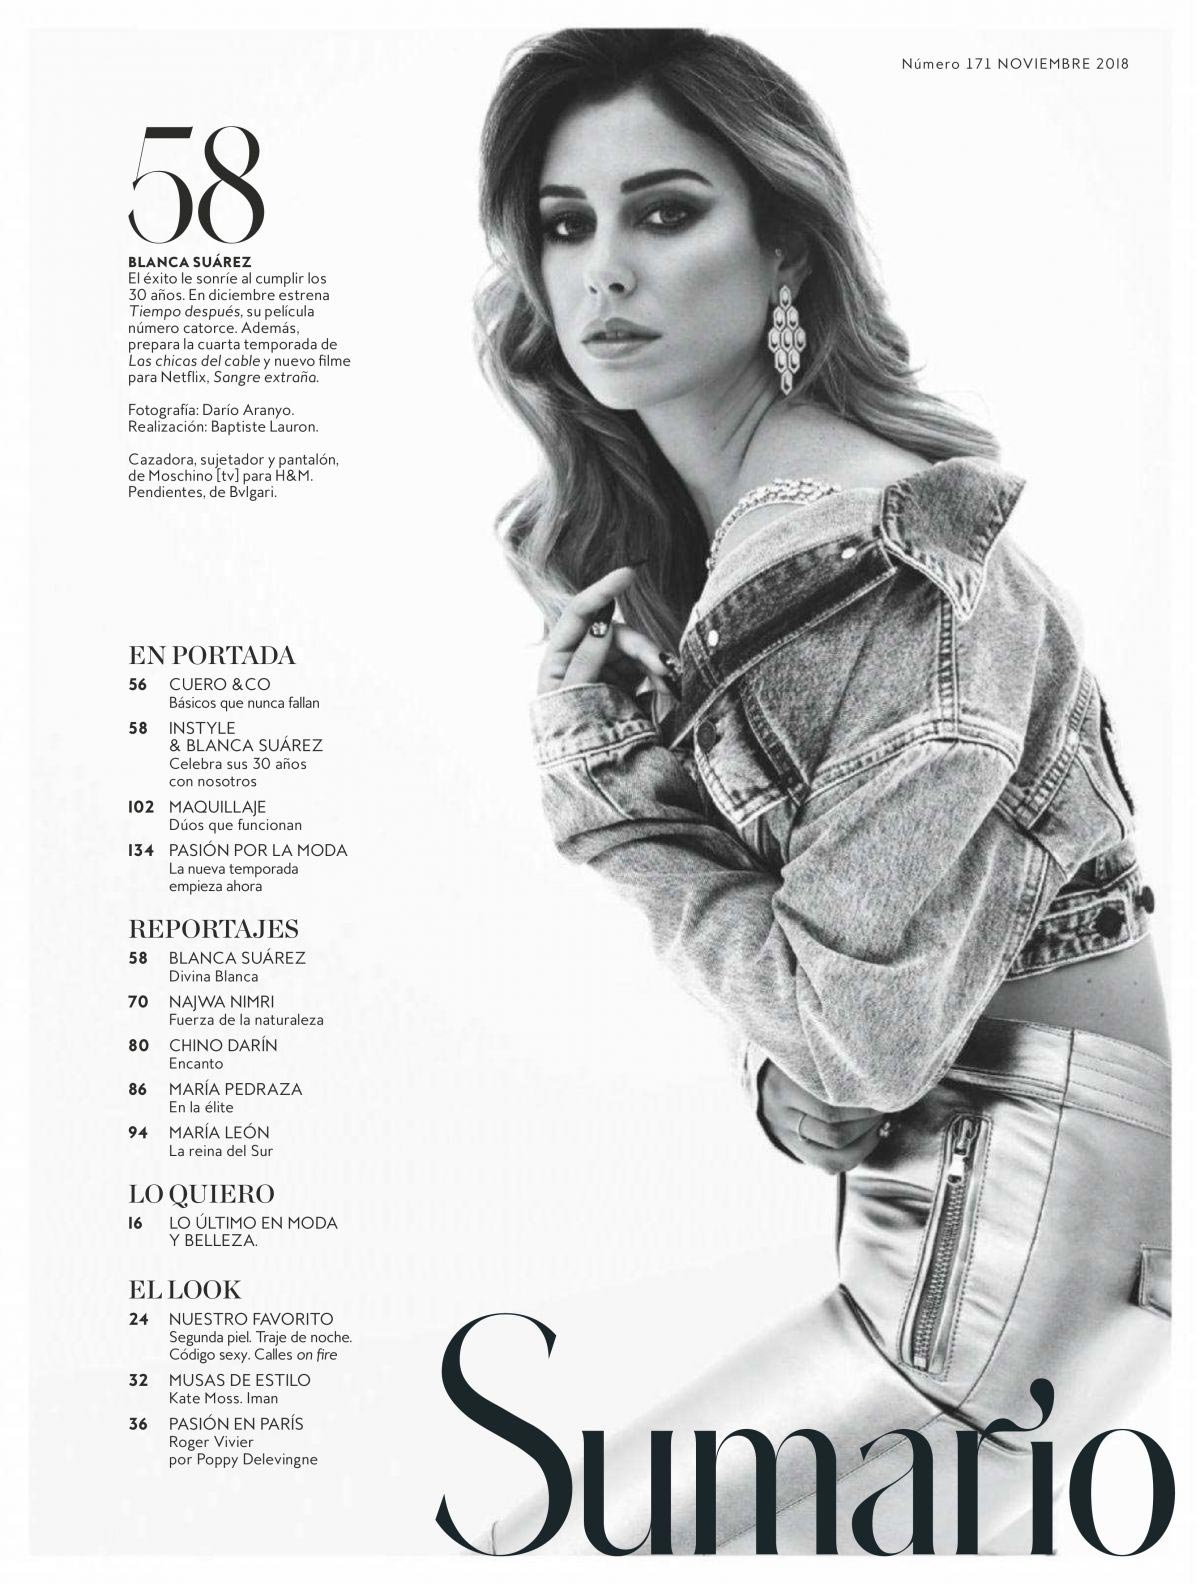 Blanca Suarez in Instyle Magazine, Spain November 2018 1